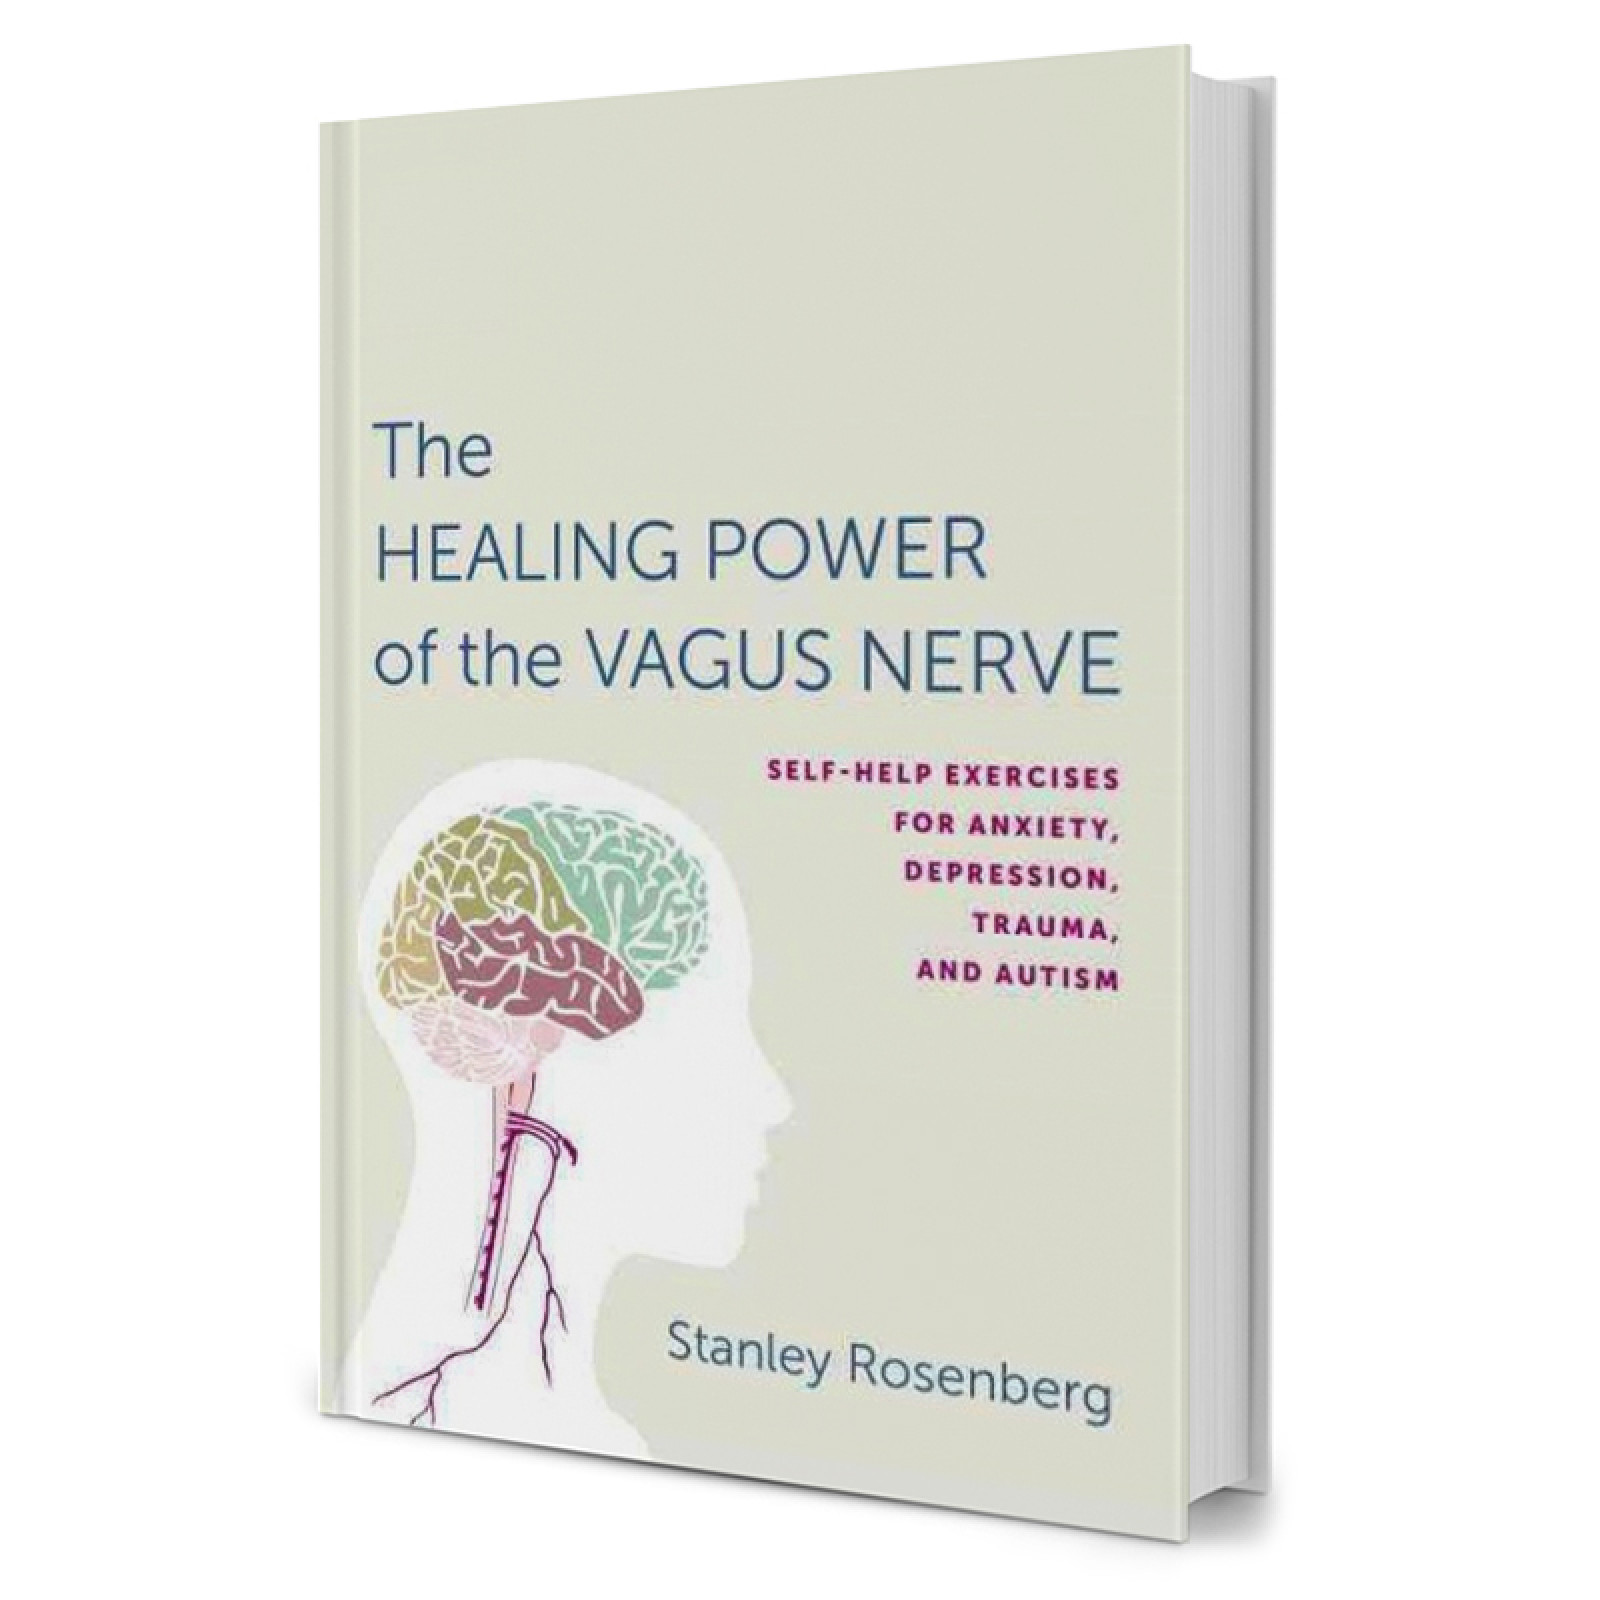 The Healing Power of the Vagus Nerve